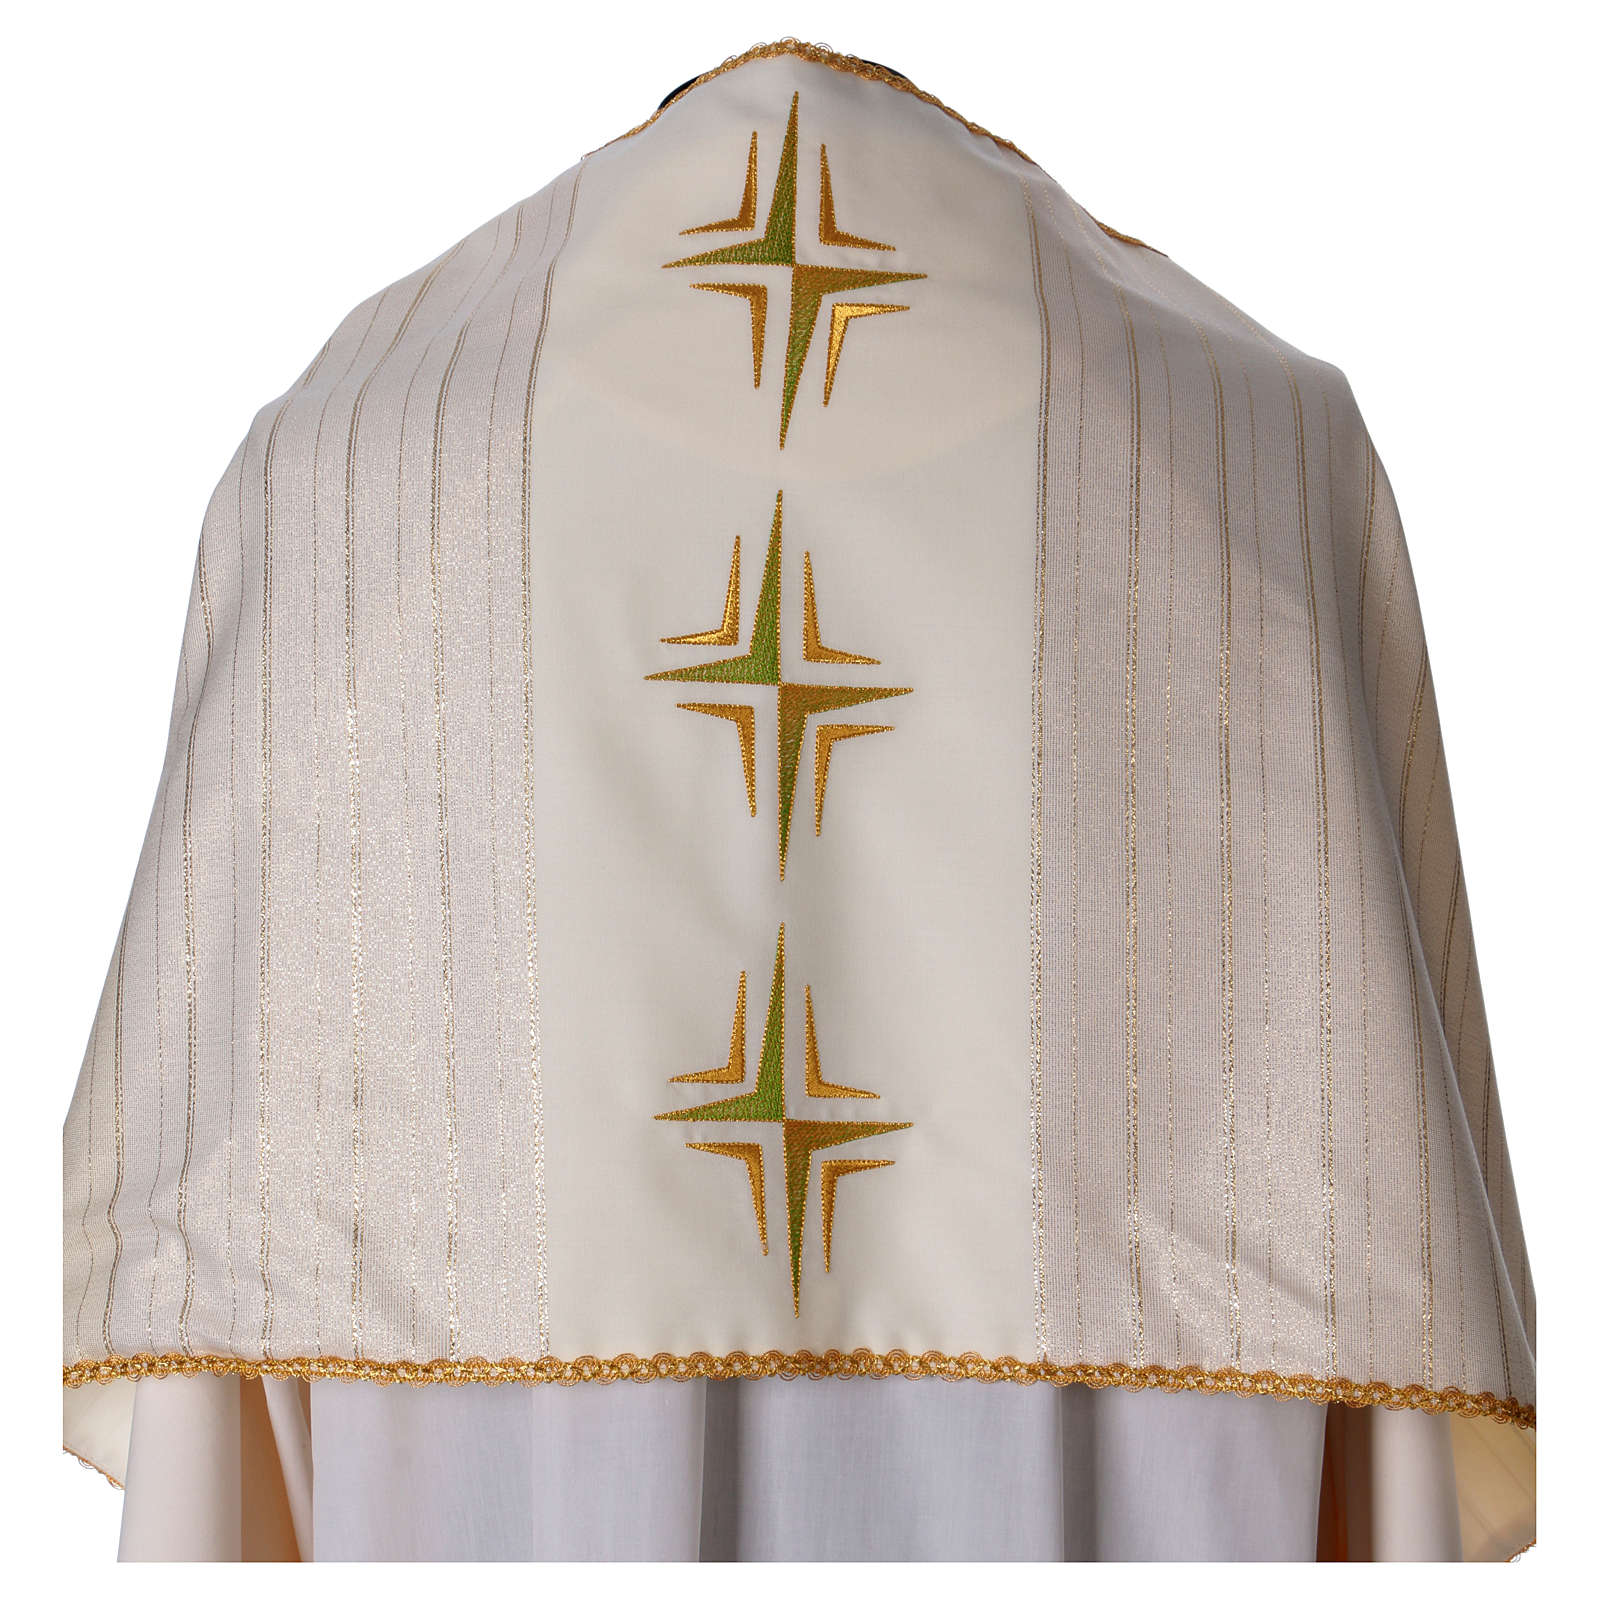 Humeral veil in 100% brushed wool two-ply fabric 4